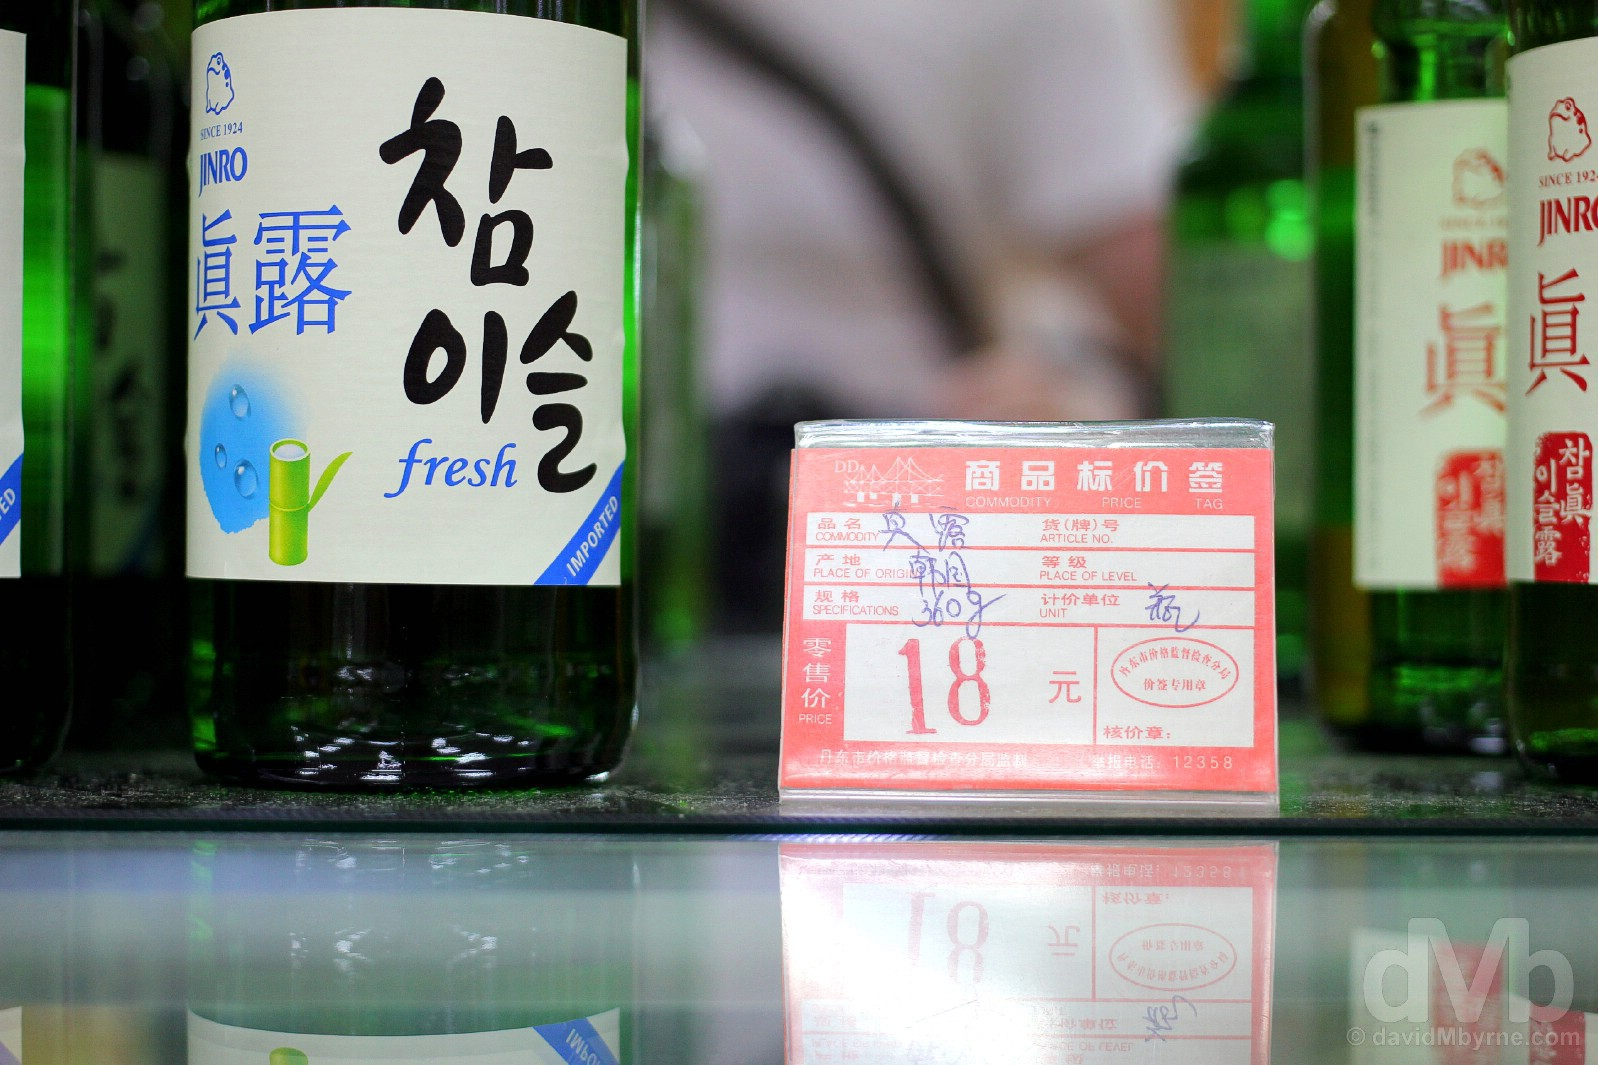 Korean soju for sale in a store in Dandong, Liaoning province, China. August 13, 2017.